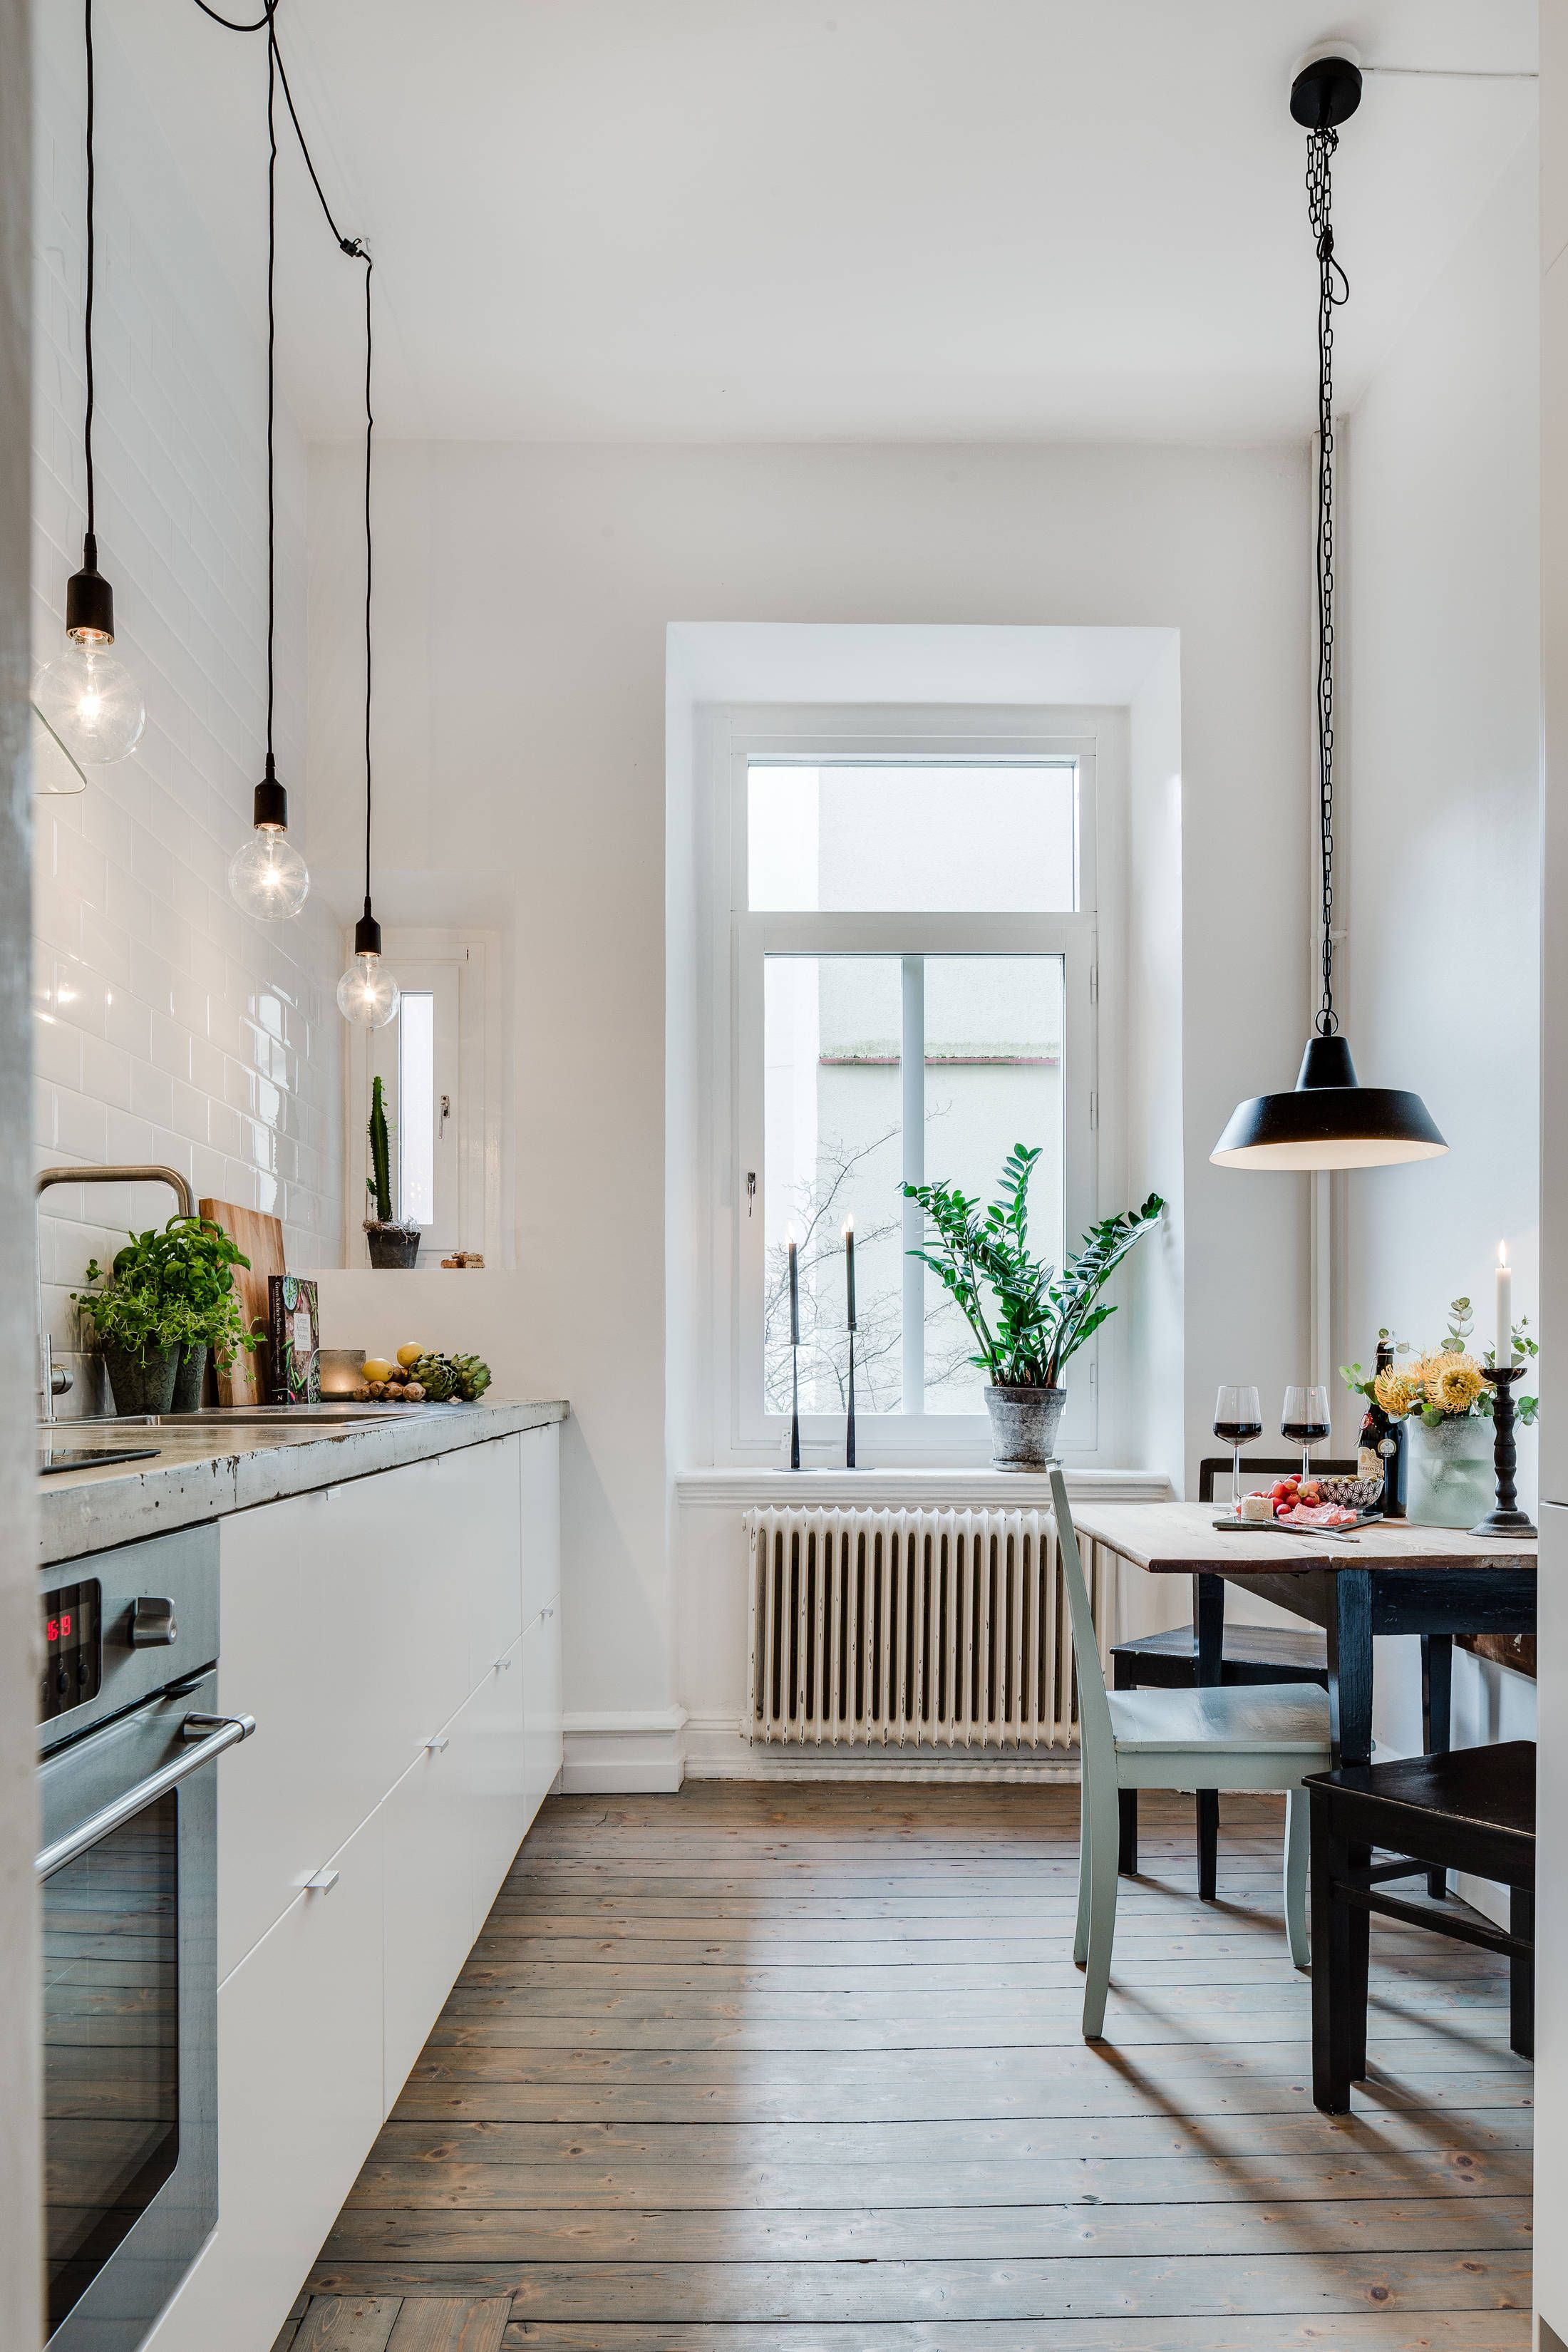 Beautiful small kitchen also dream home by lonasart rh pinterest